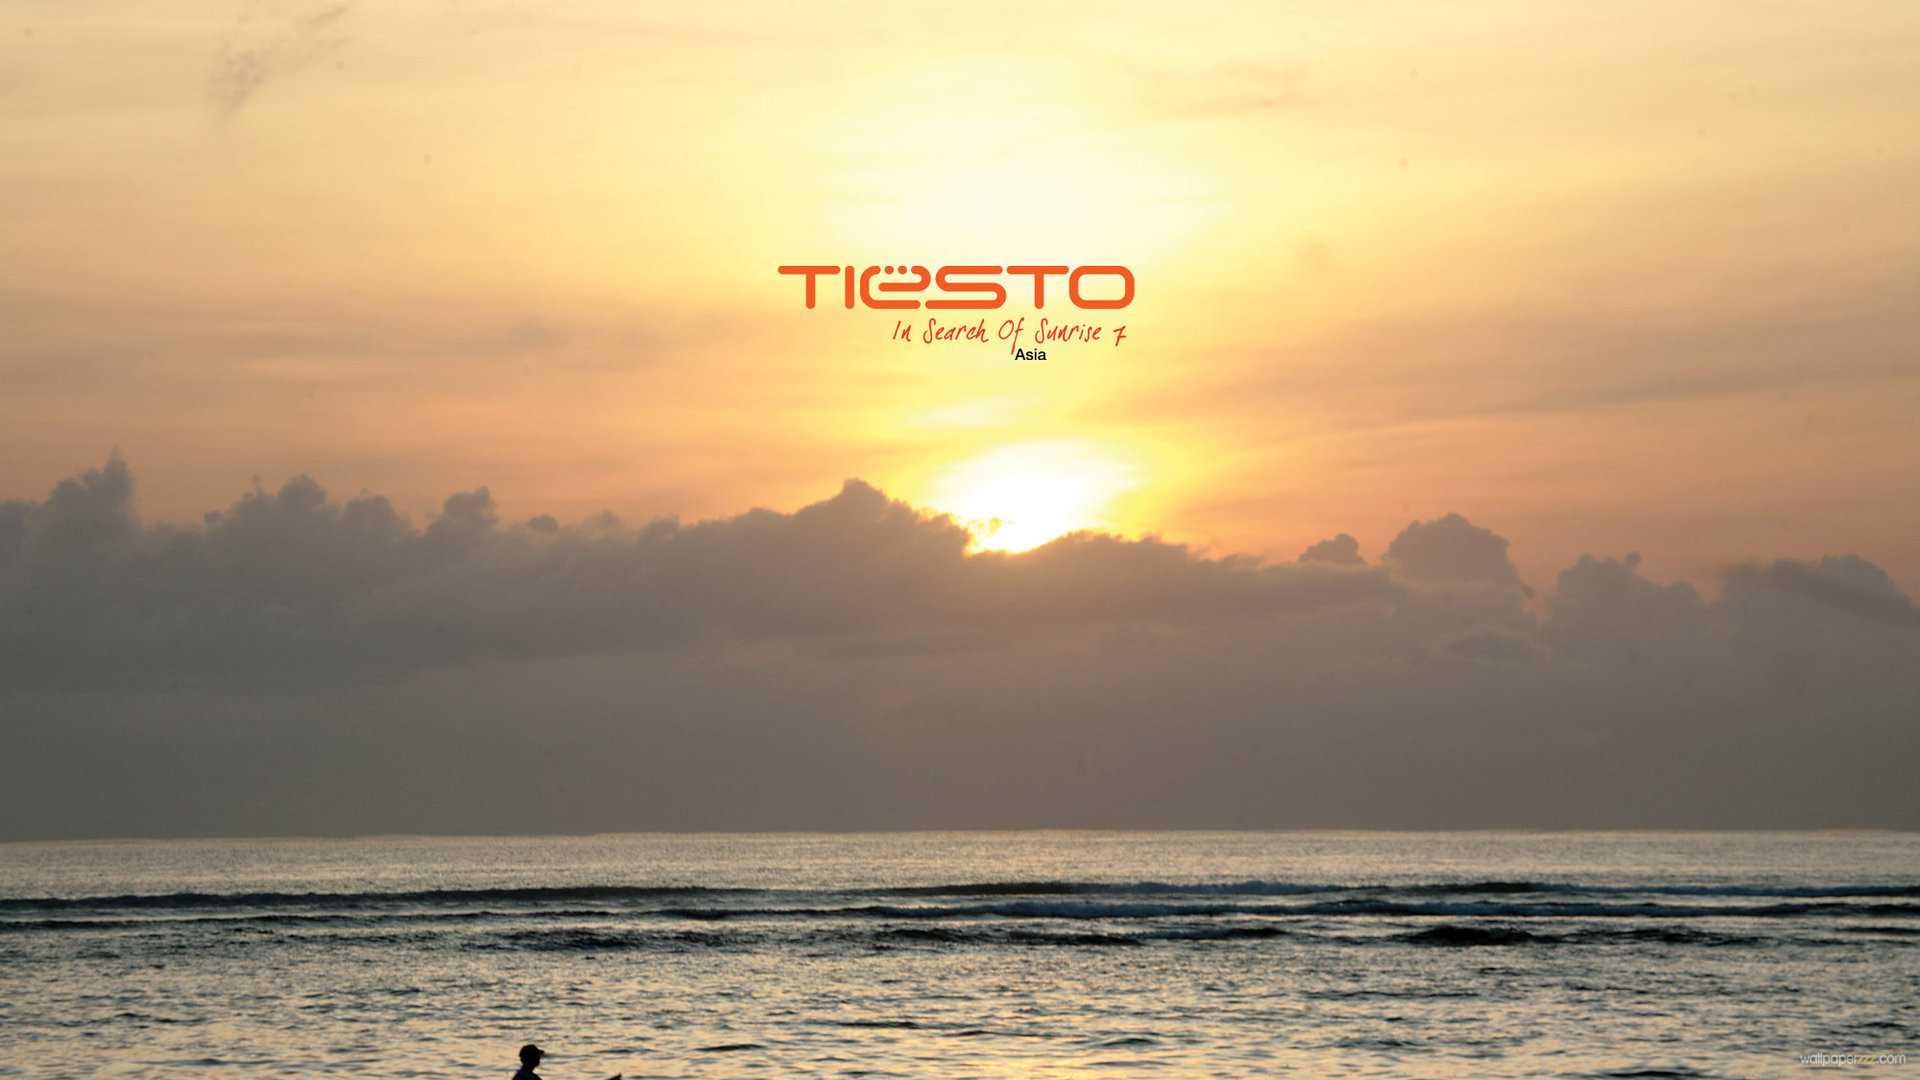 Dj Tiesto In Search Of Sunrise